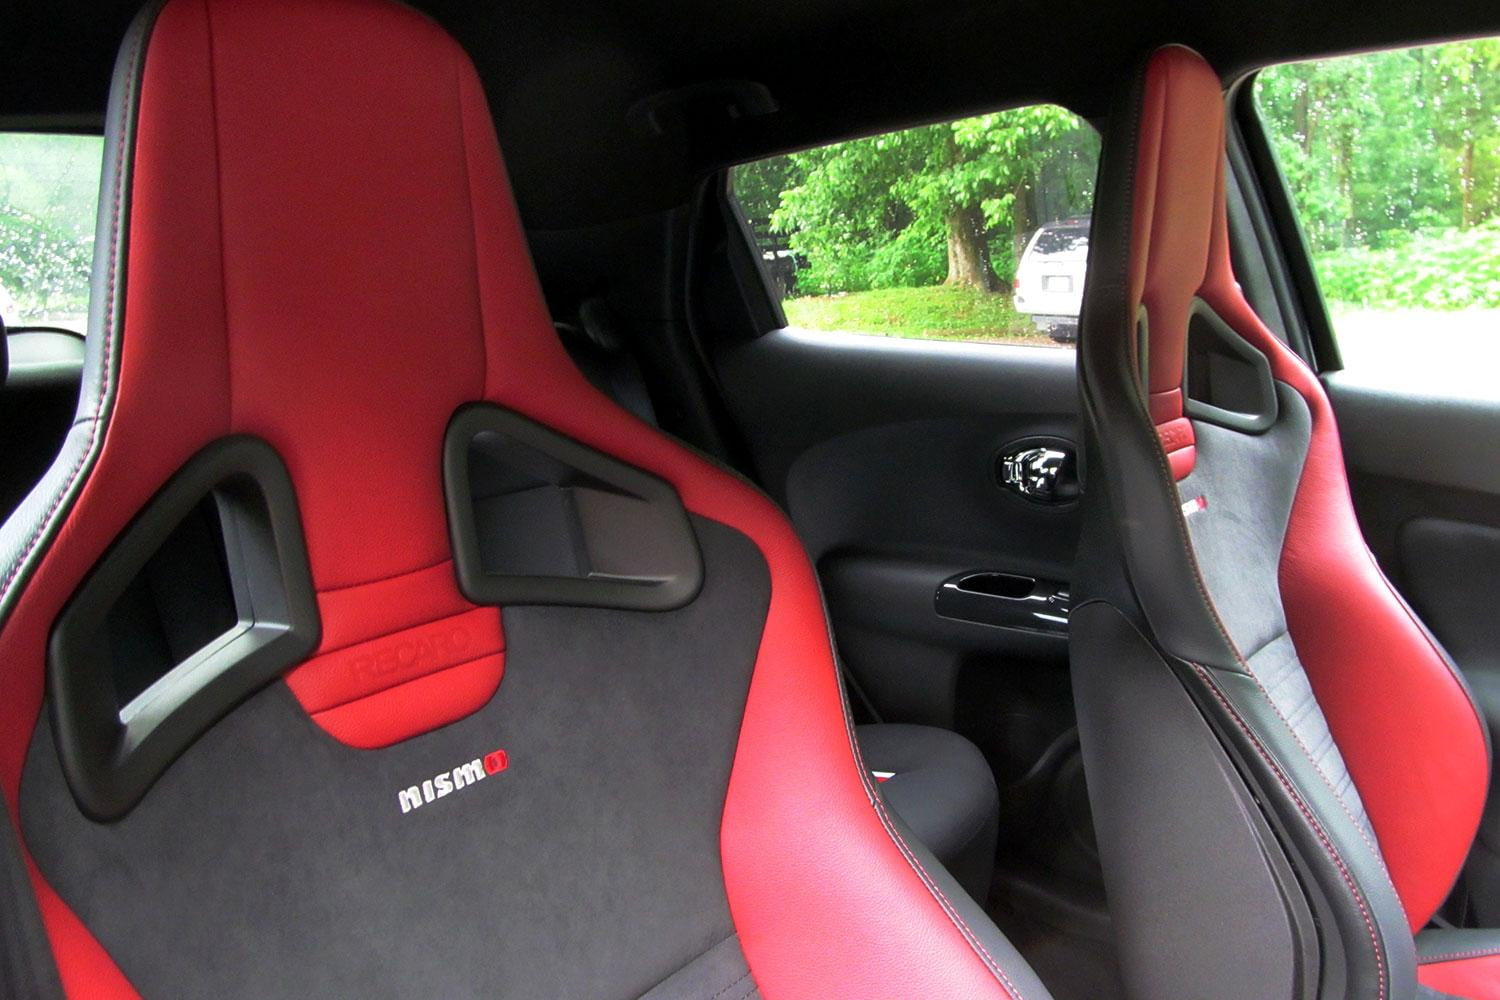 Sensational First Drive 2014 Nissan Juke Nismo Rs Digital Trends Caraccident5 Cool Chair Designs And Ideas Caraccident5Info